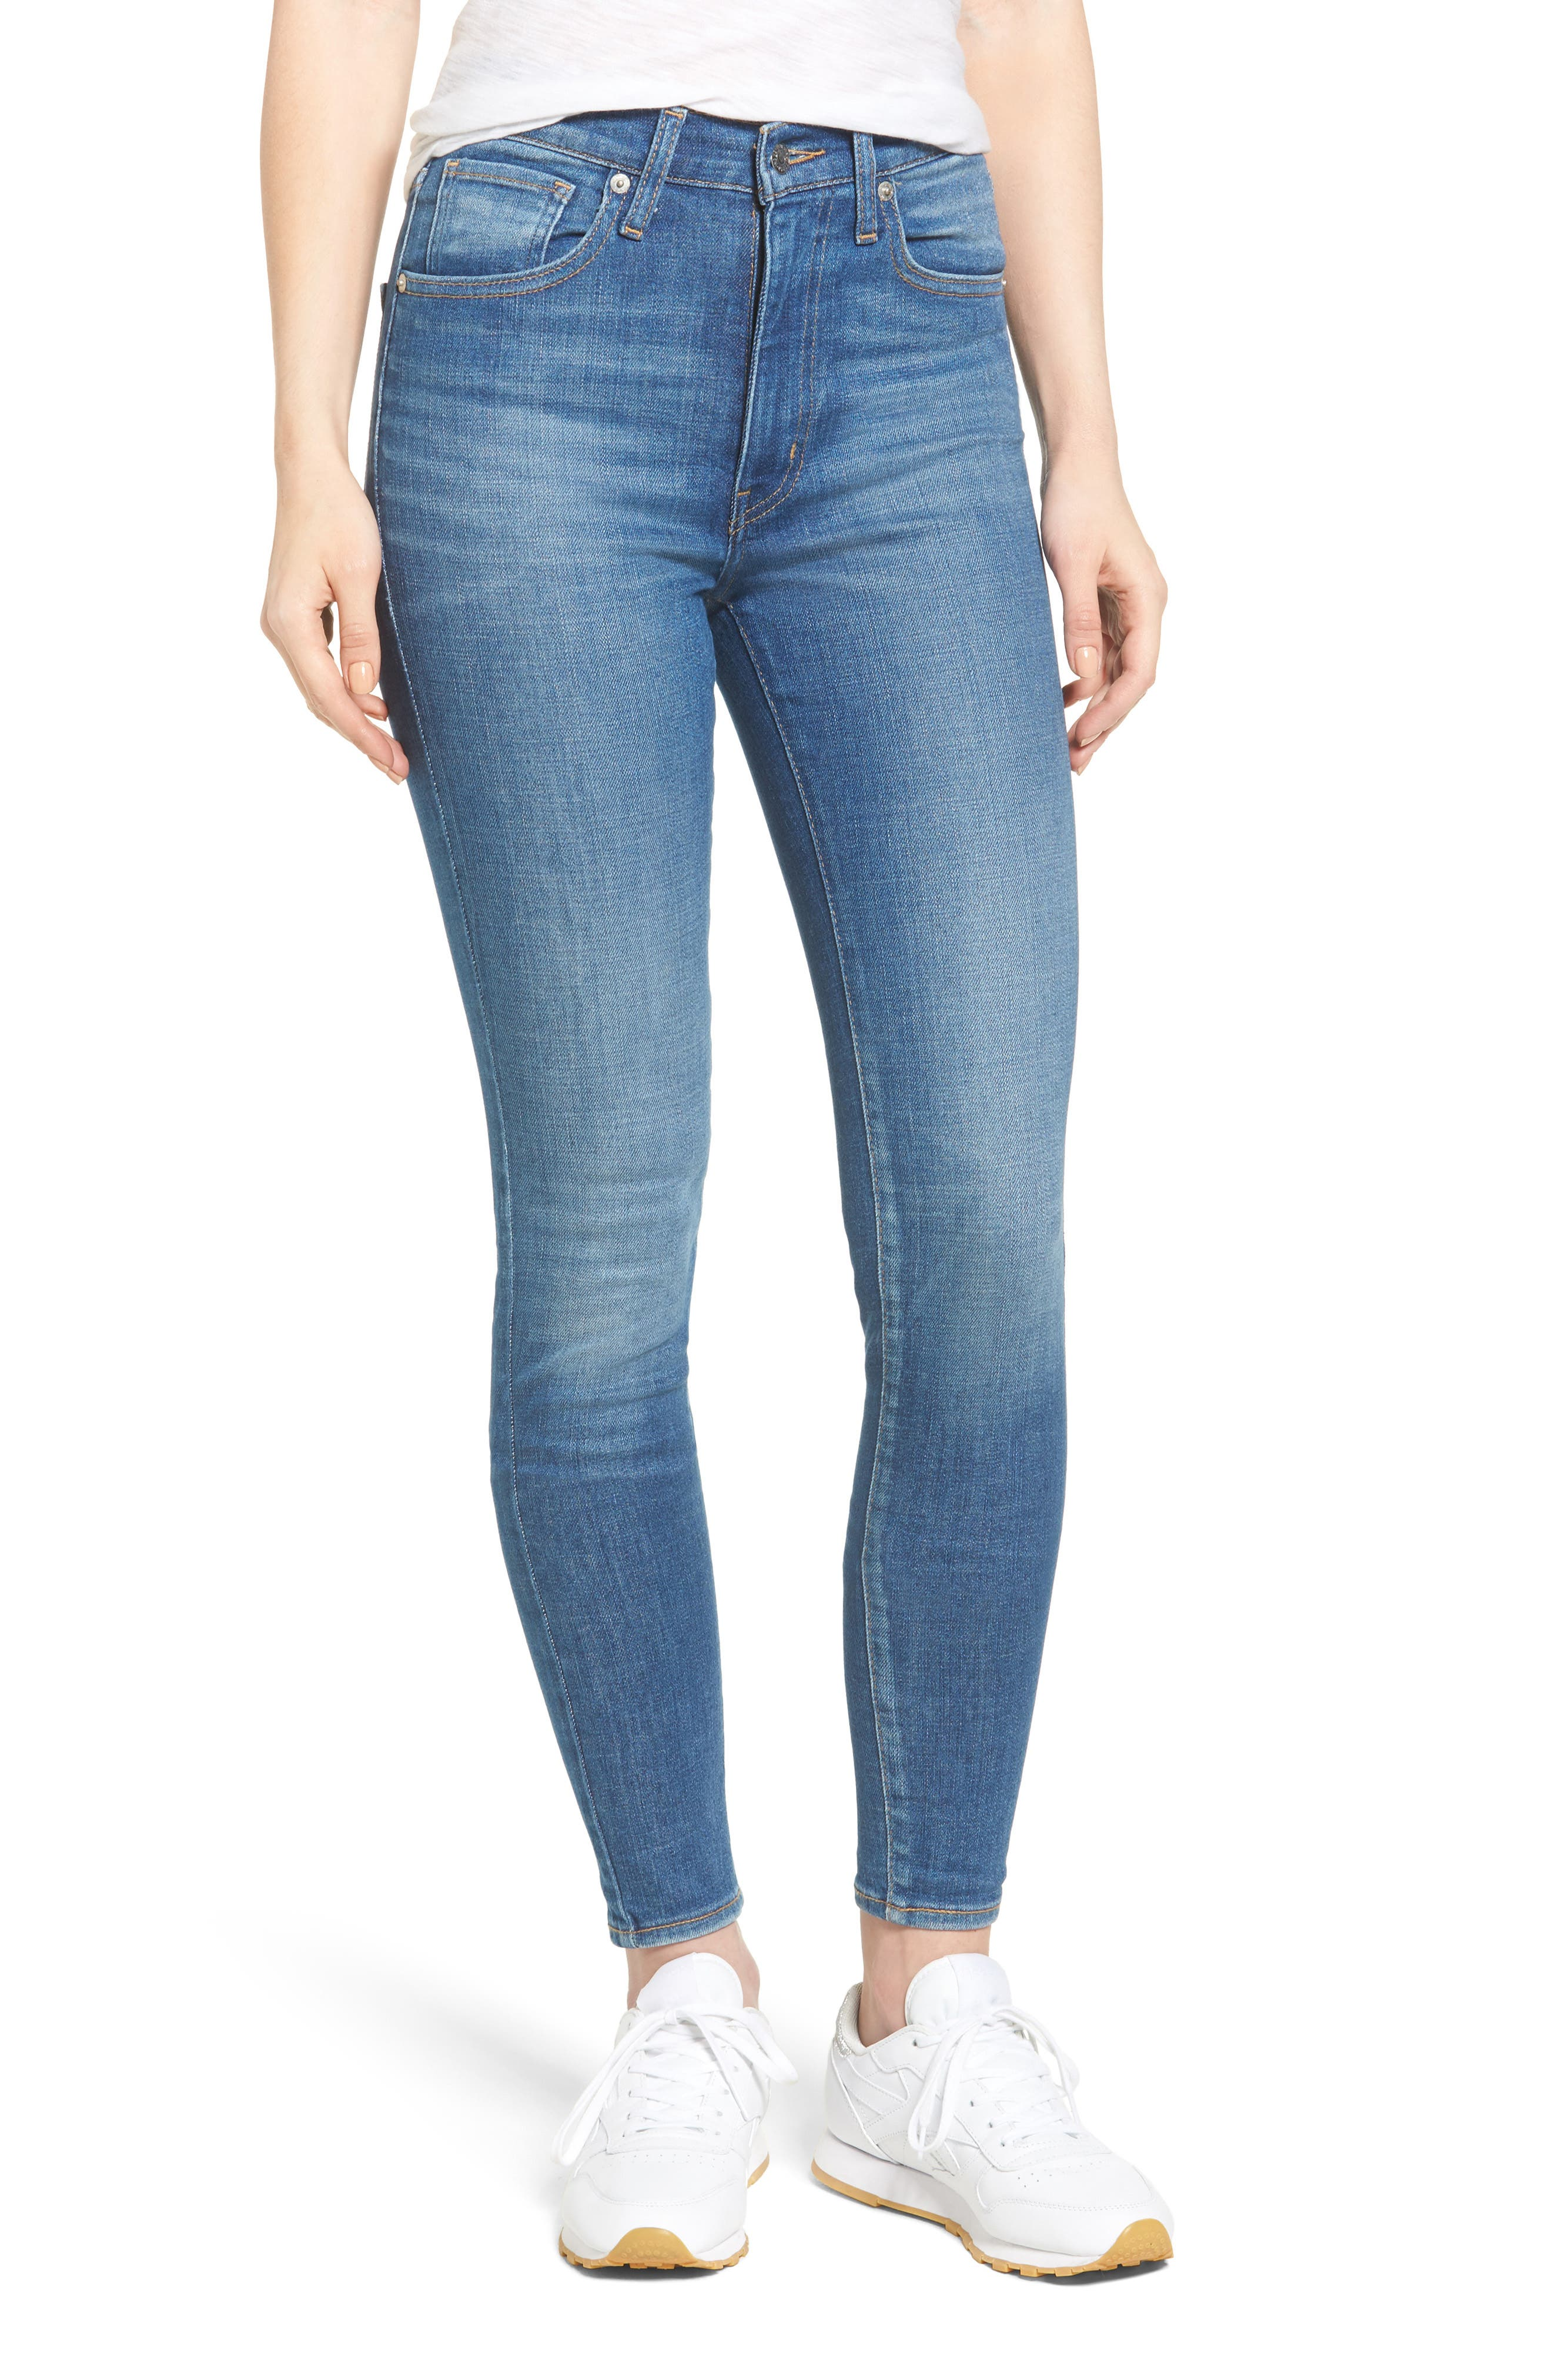 Mile High Skinny Jeans,                             Main thumbnail 1, color,                             Shut The Front Door